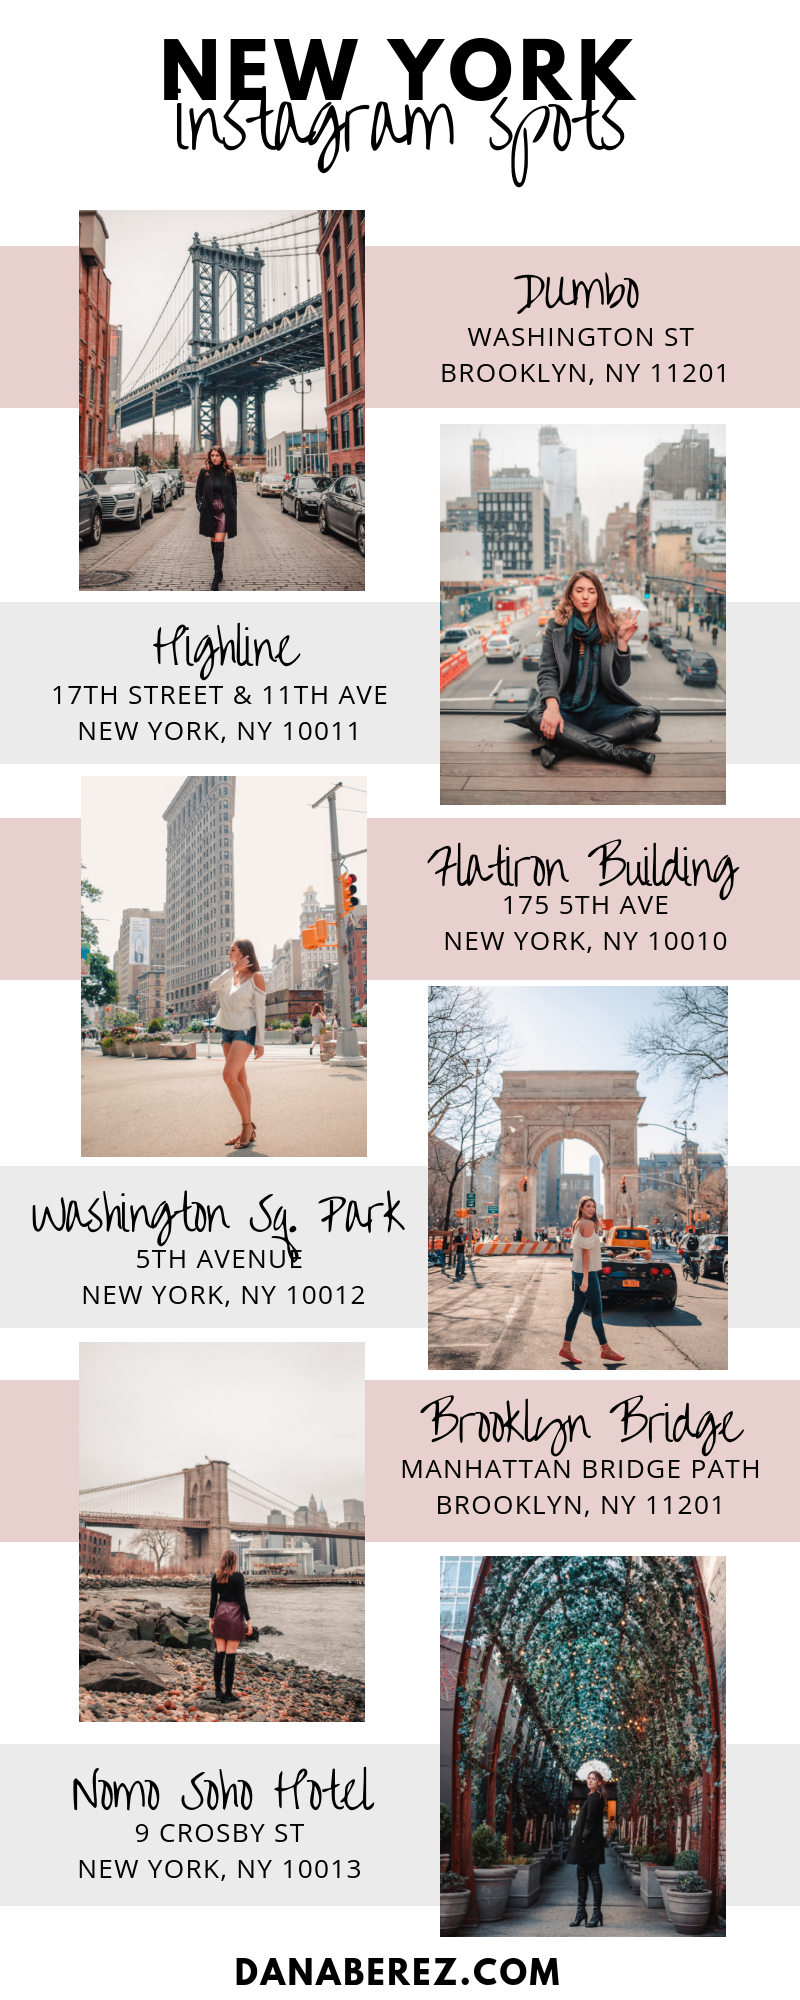 The 10 Best Instagram Spots in NYC- NYC Most Instagramable Dana Berez